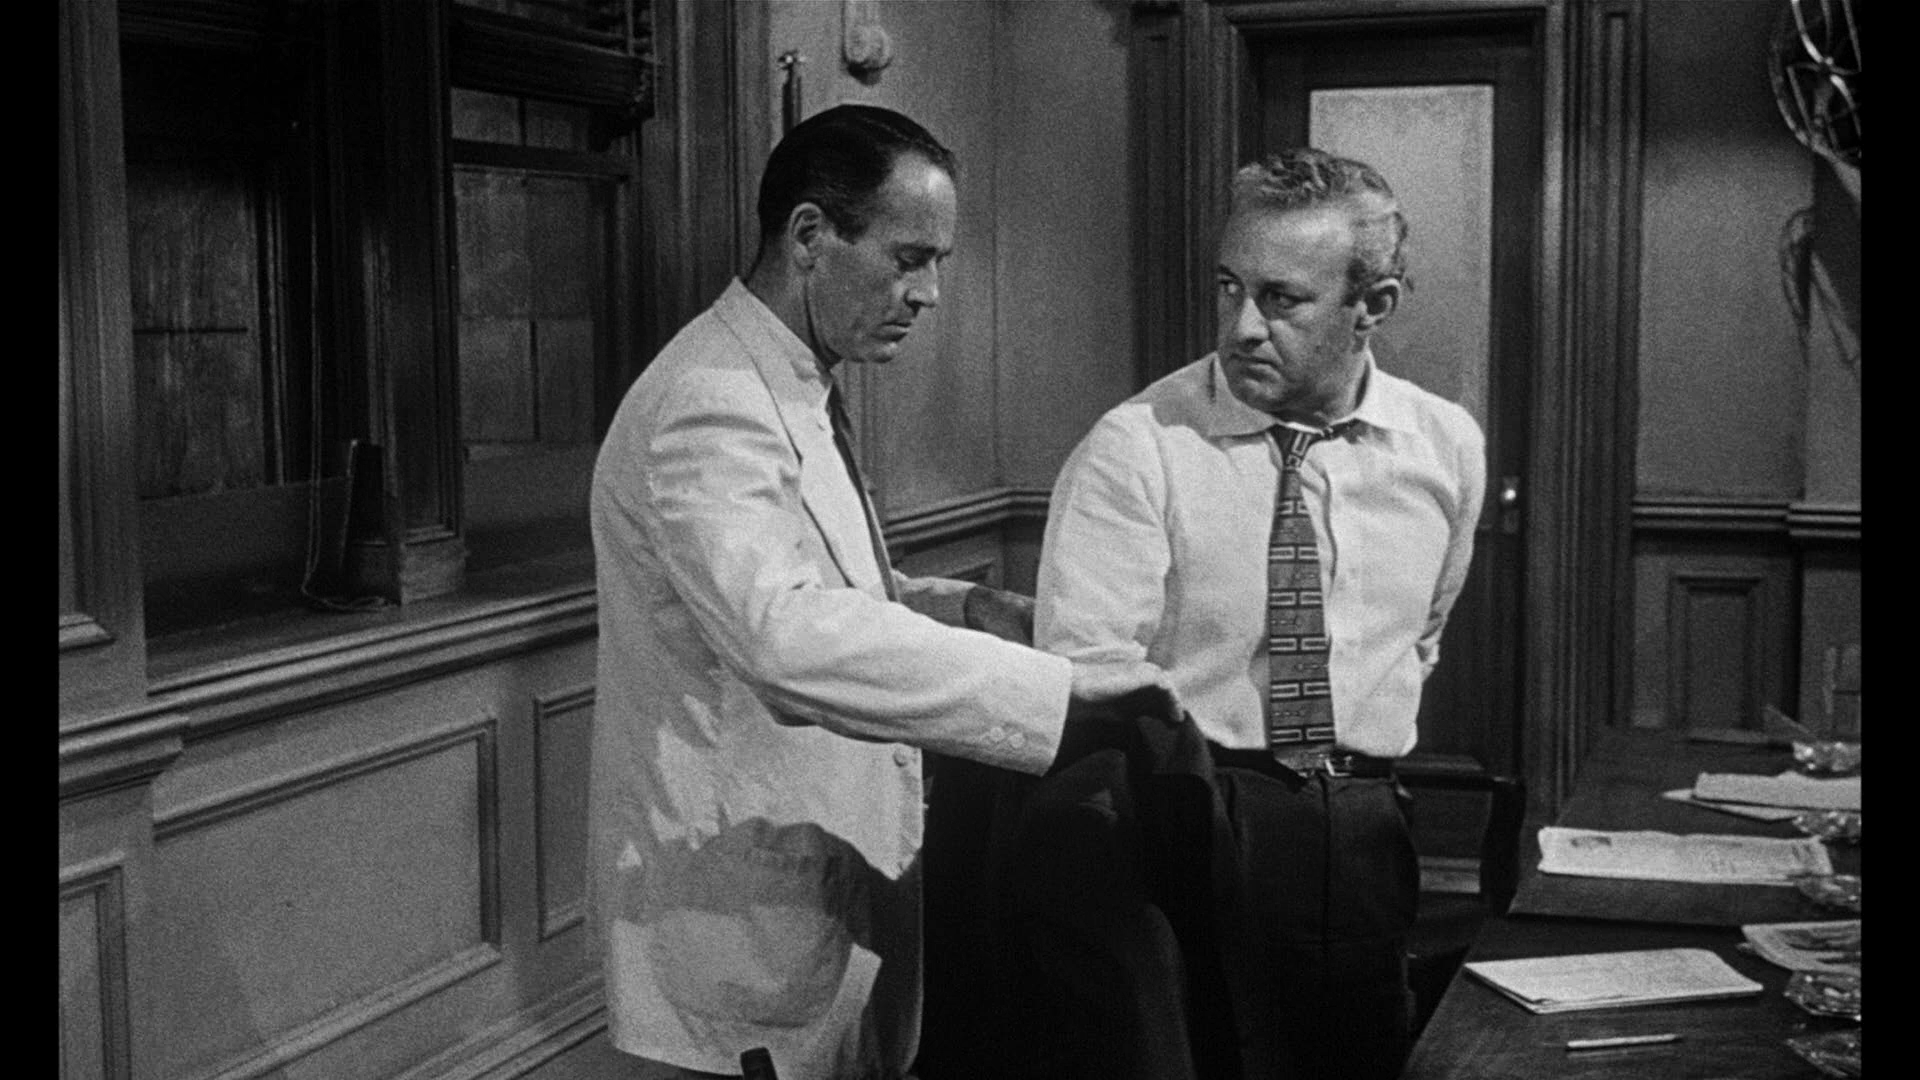 12 angry men Did you know trivia in 12 angry men (1997), lee j cobb's character was played by george c scott, making it the second time scott played a character on film that had been originated by cobb.